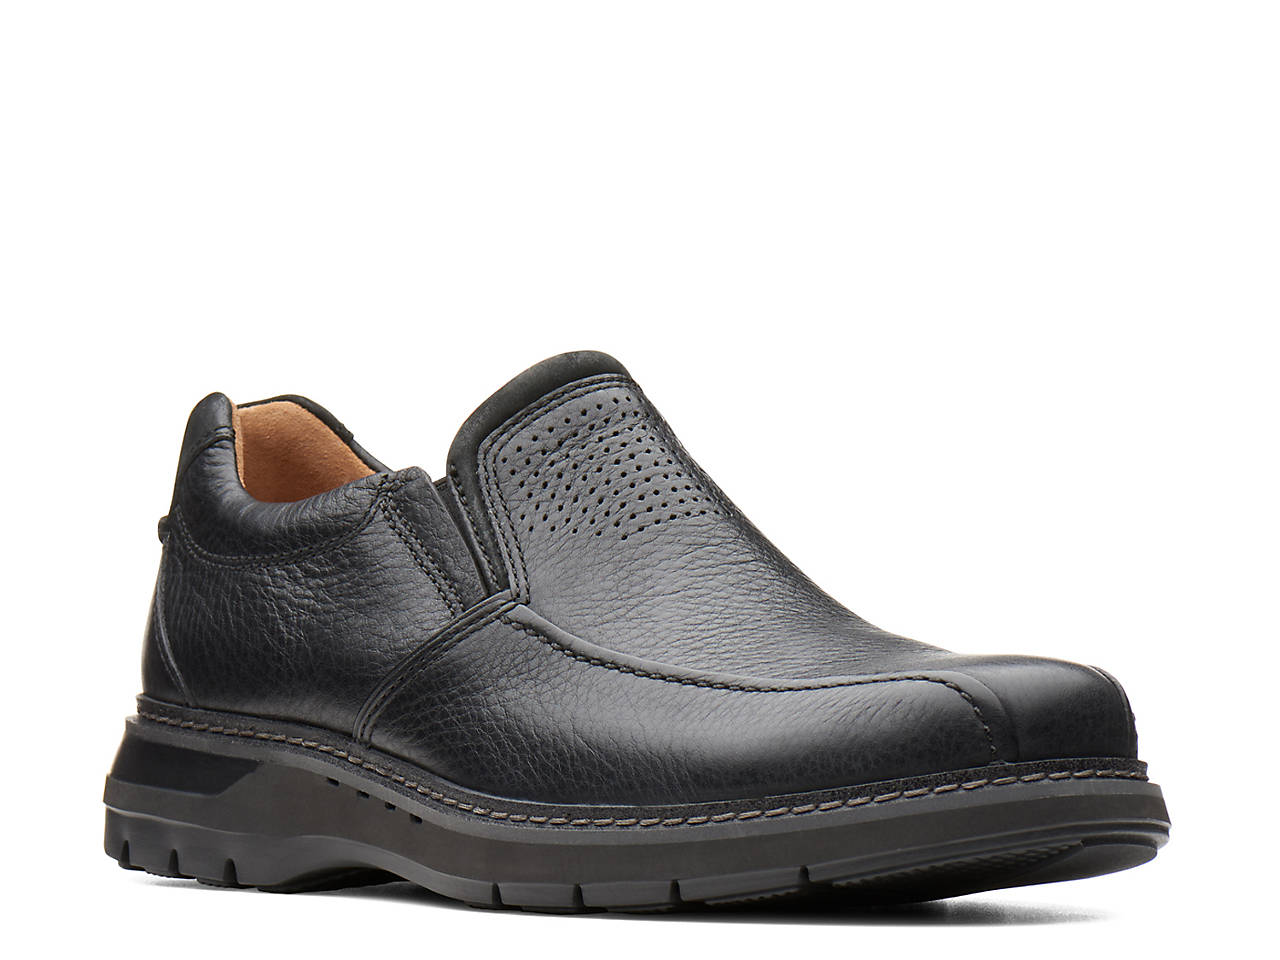 e7ded4ae Clarks Unstructured Un.Ramble Step Ro Slip-On Men's Shoes | DSW